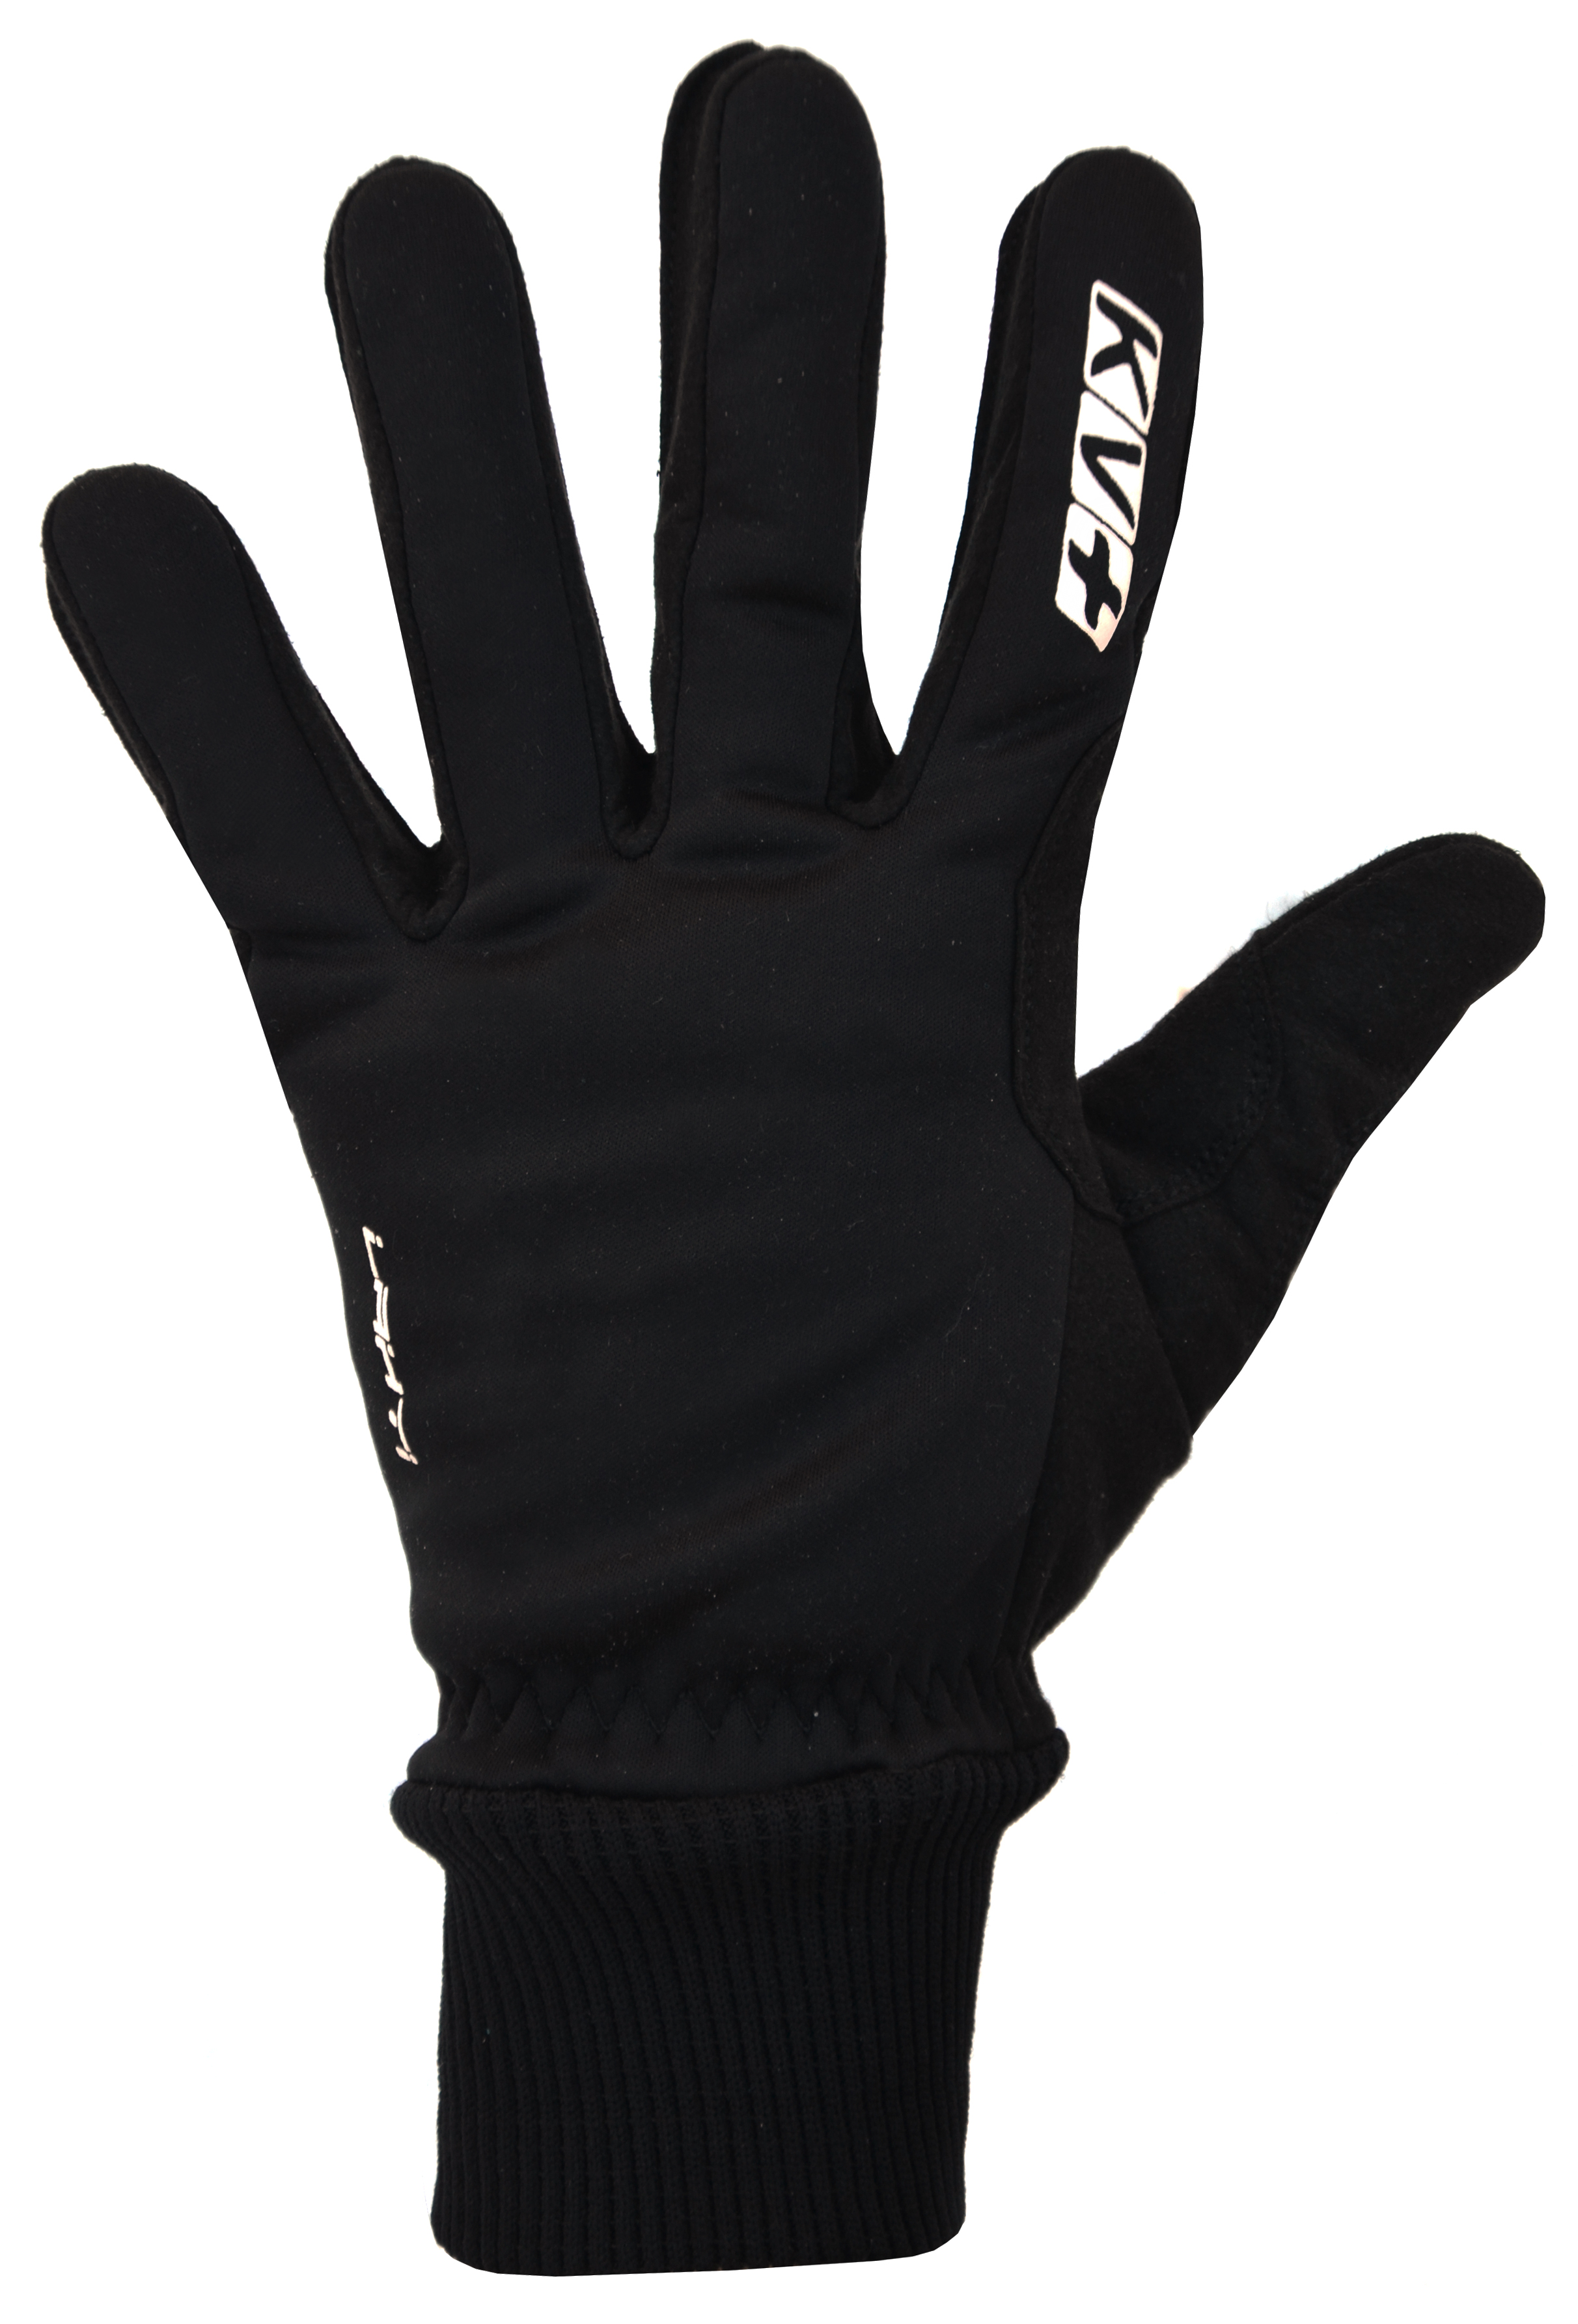 KV+ LAHTI GLOVES Black 8G10-1